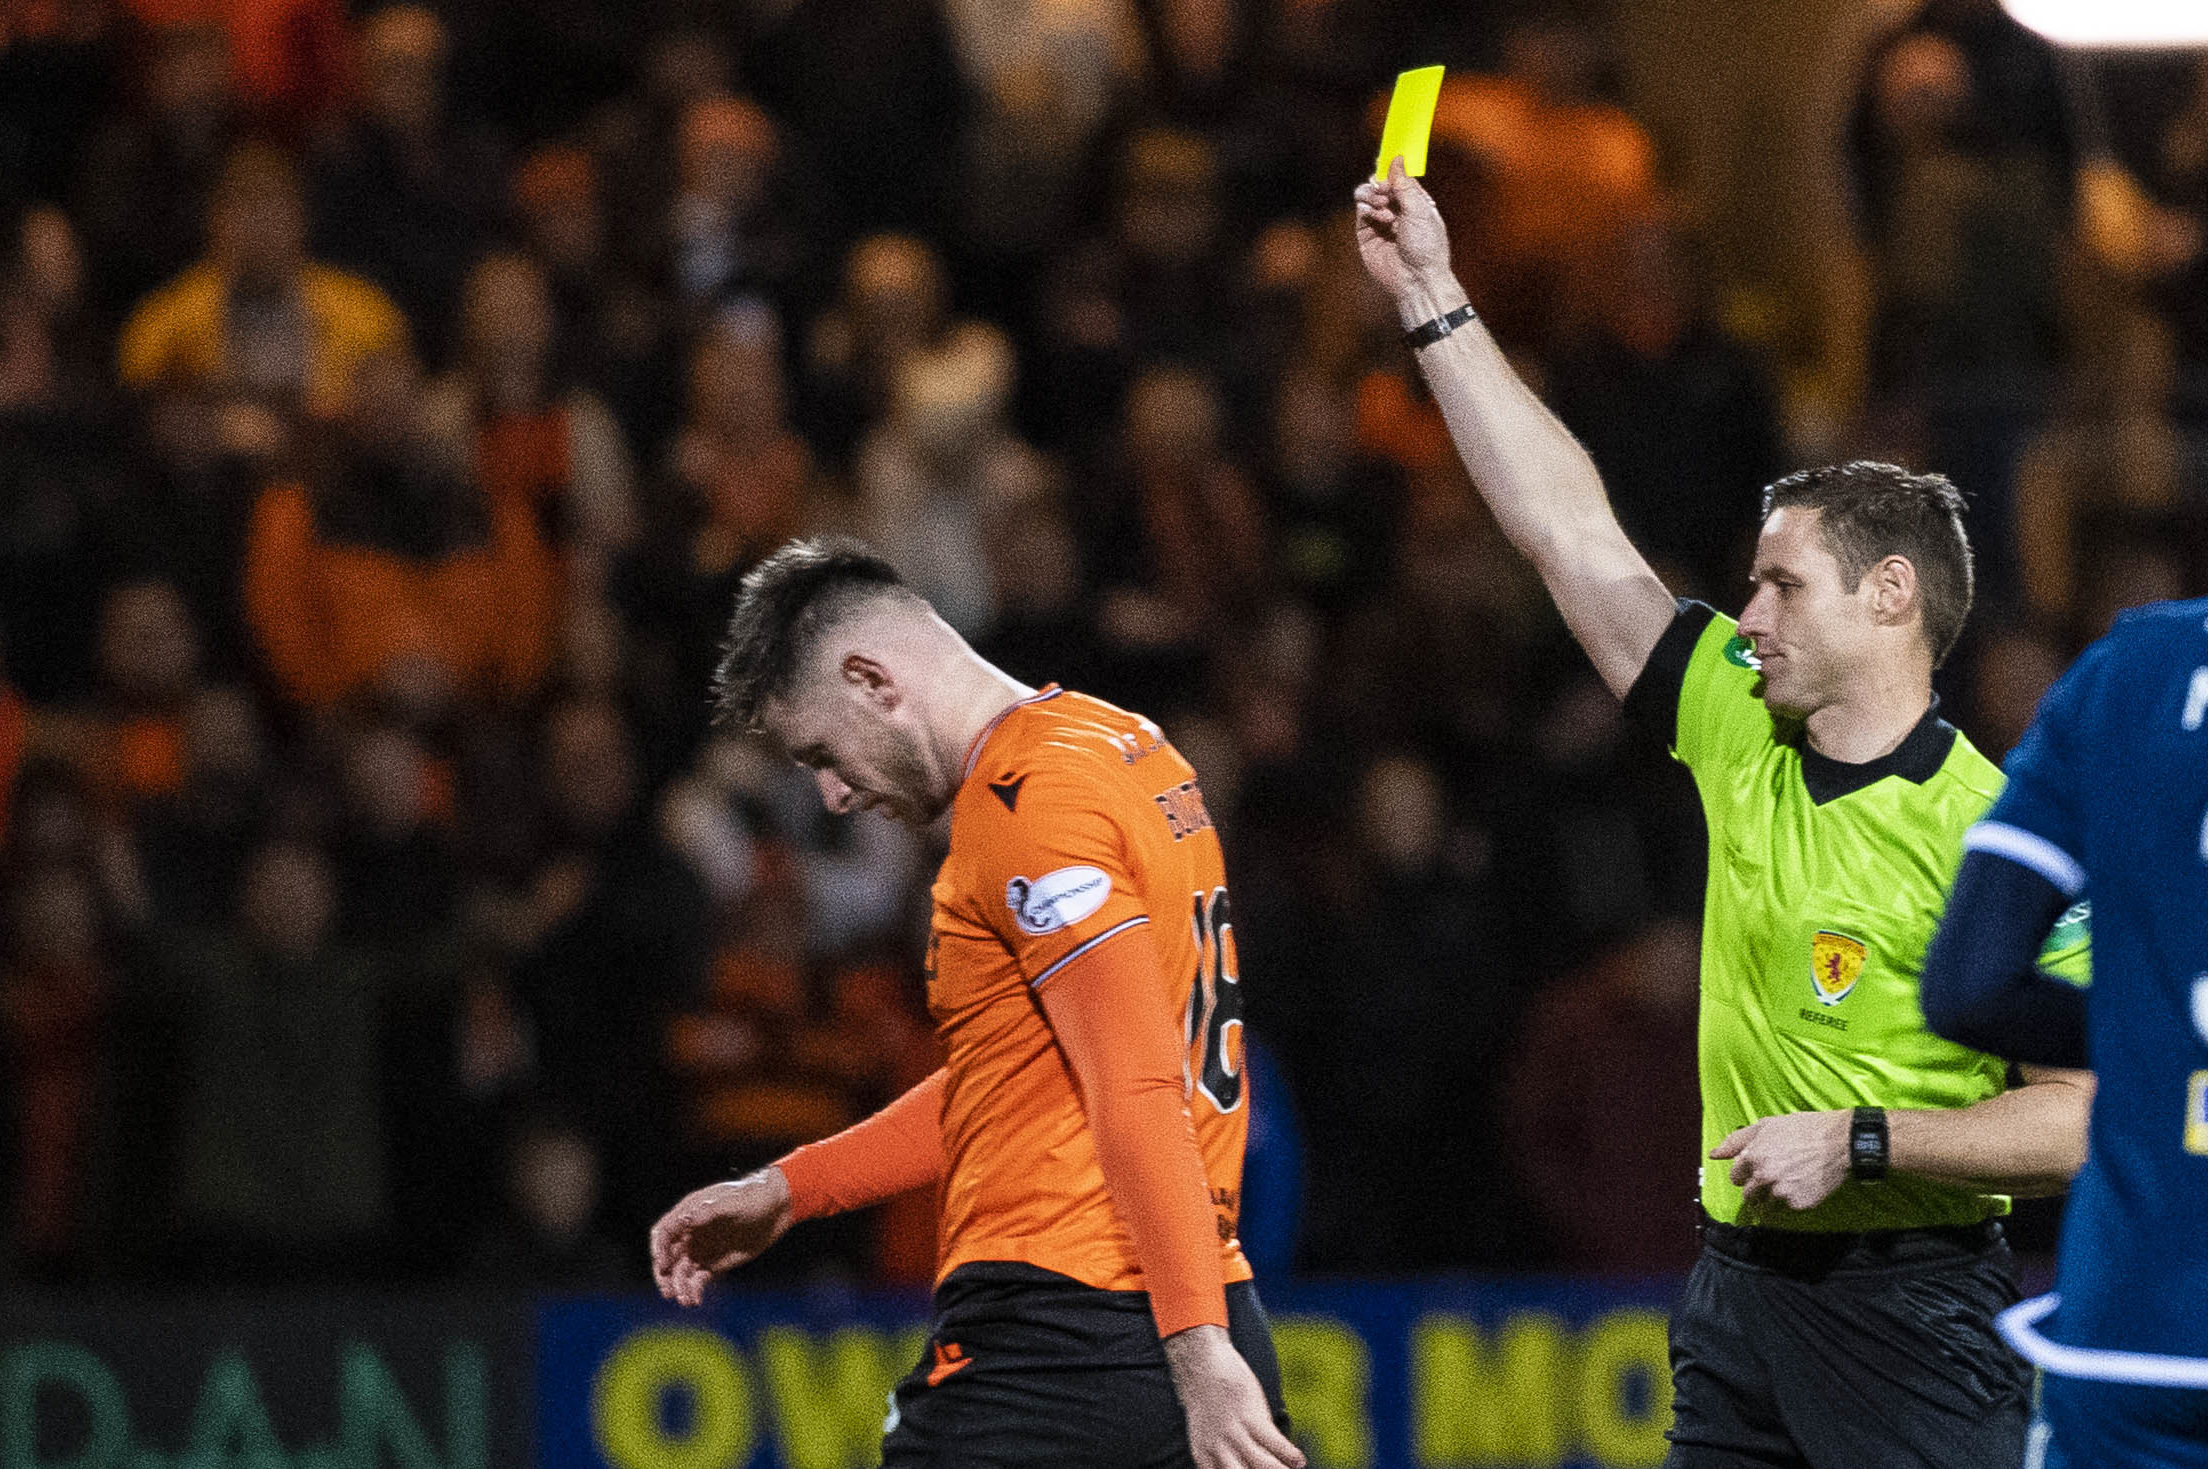 Calum Butcher is shown the yellow card for his challenge on Shaun Byrne.